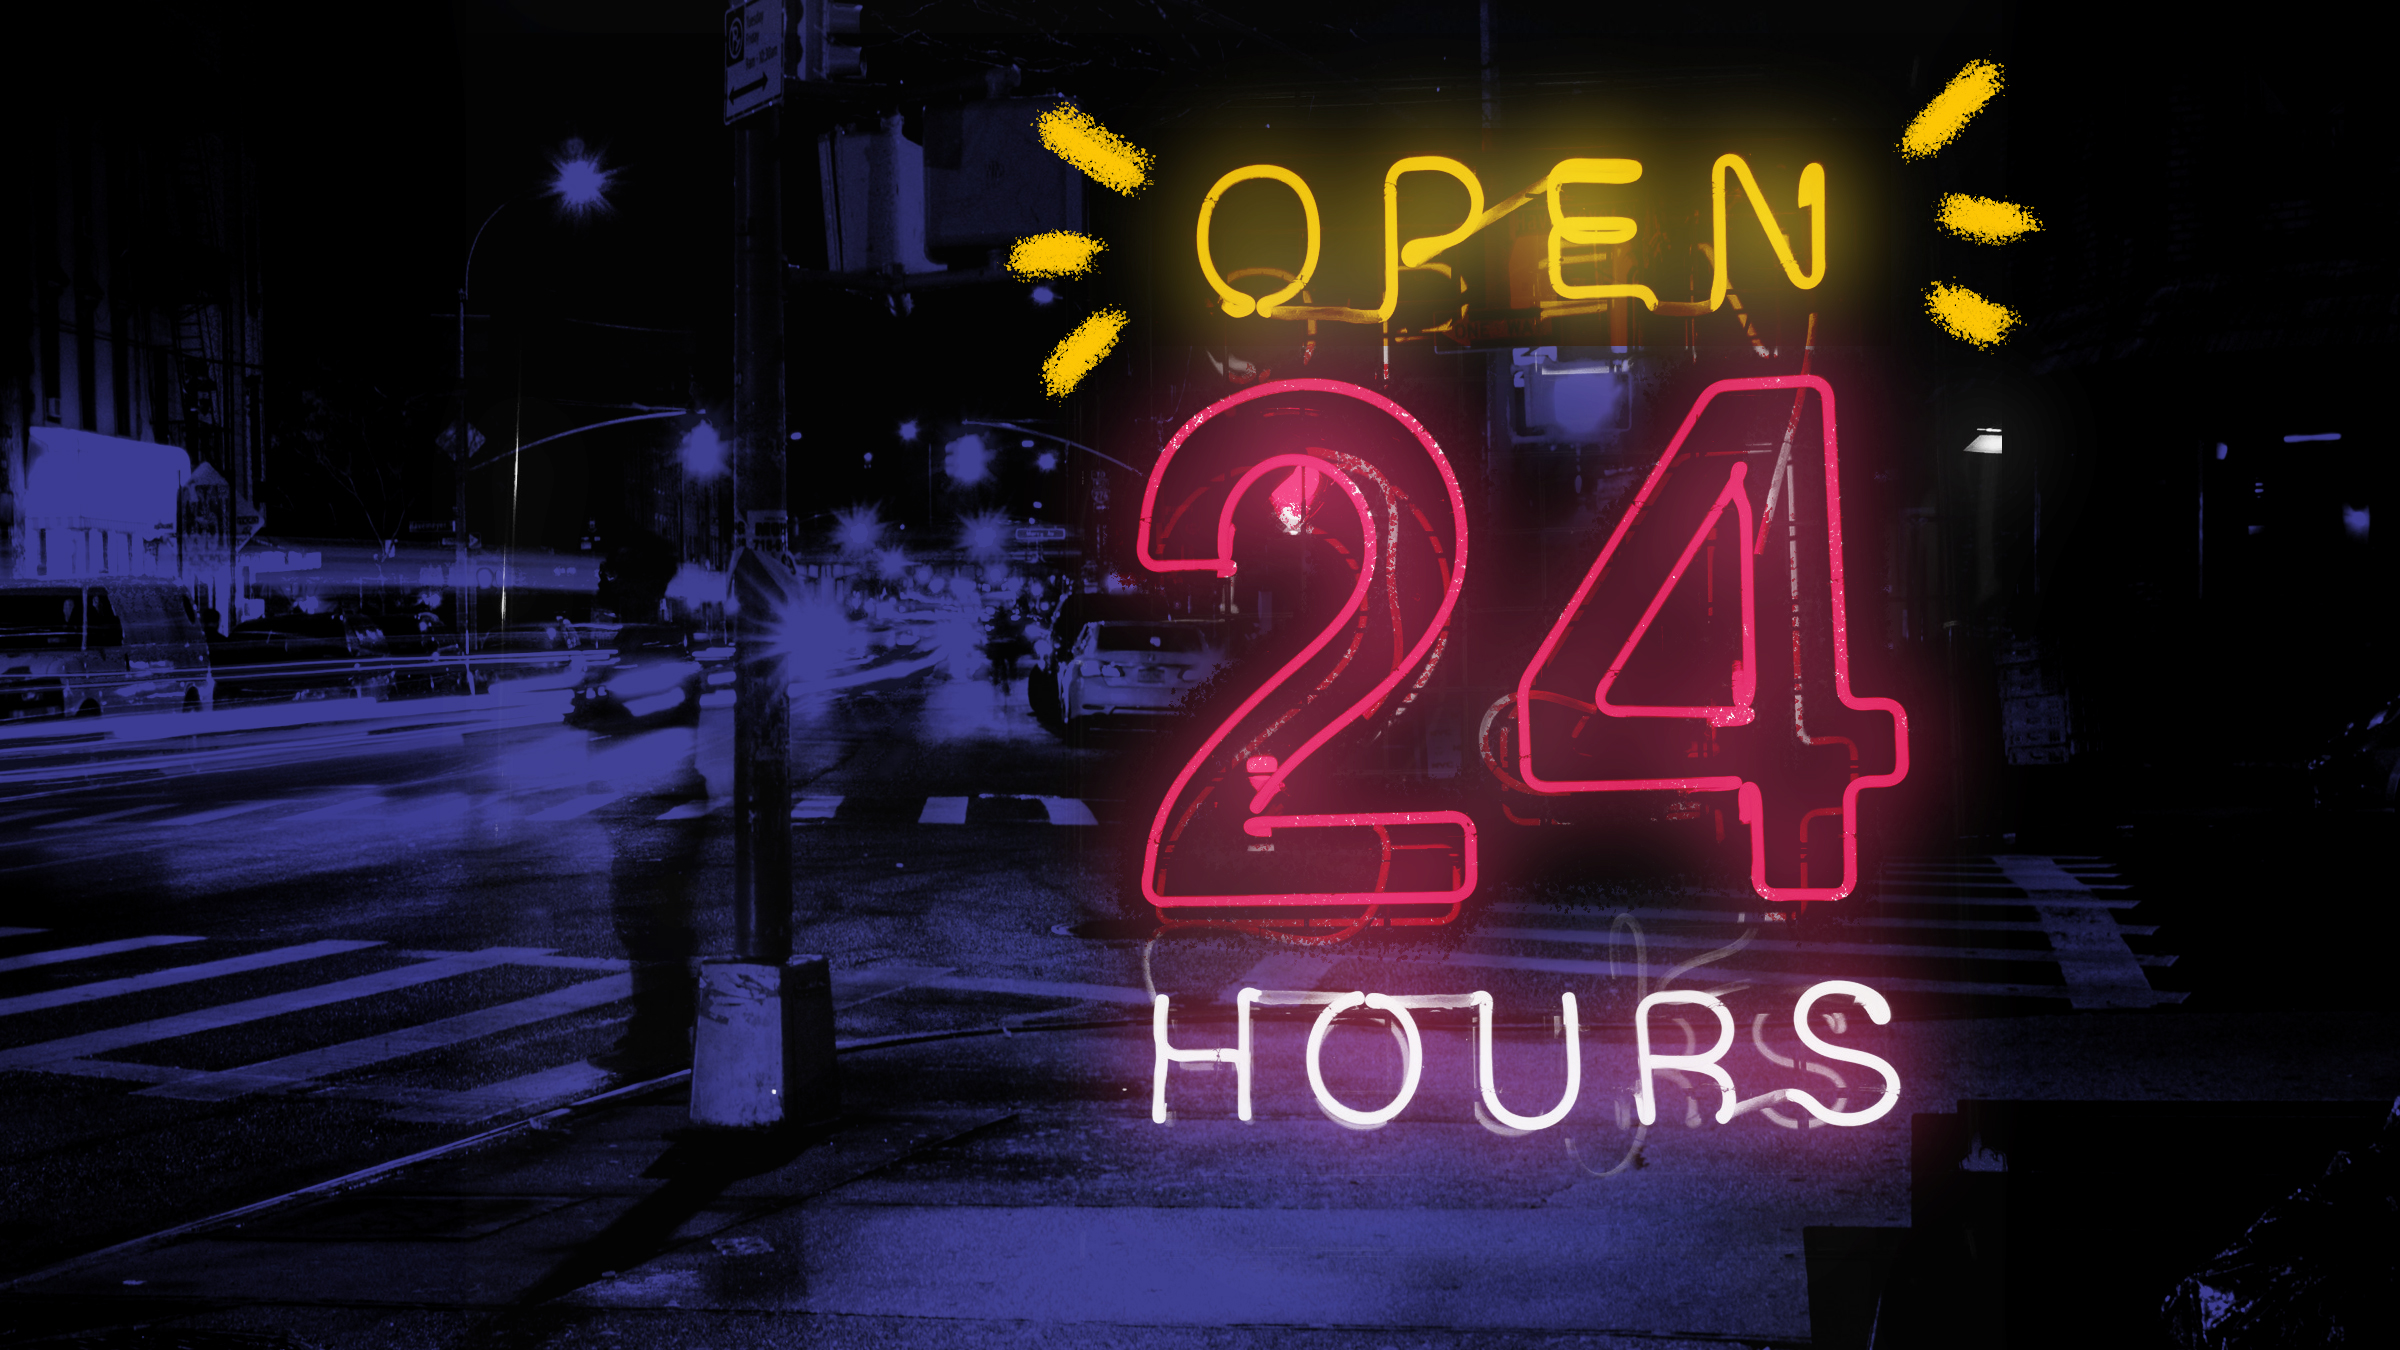 """Open 24 hours"" lit up in pink and white neon lights"